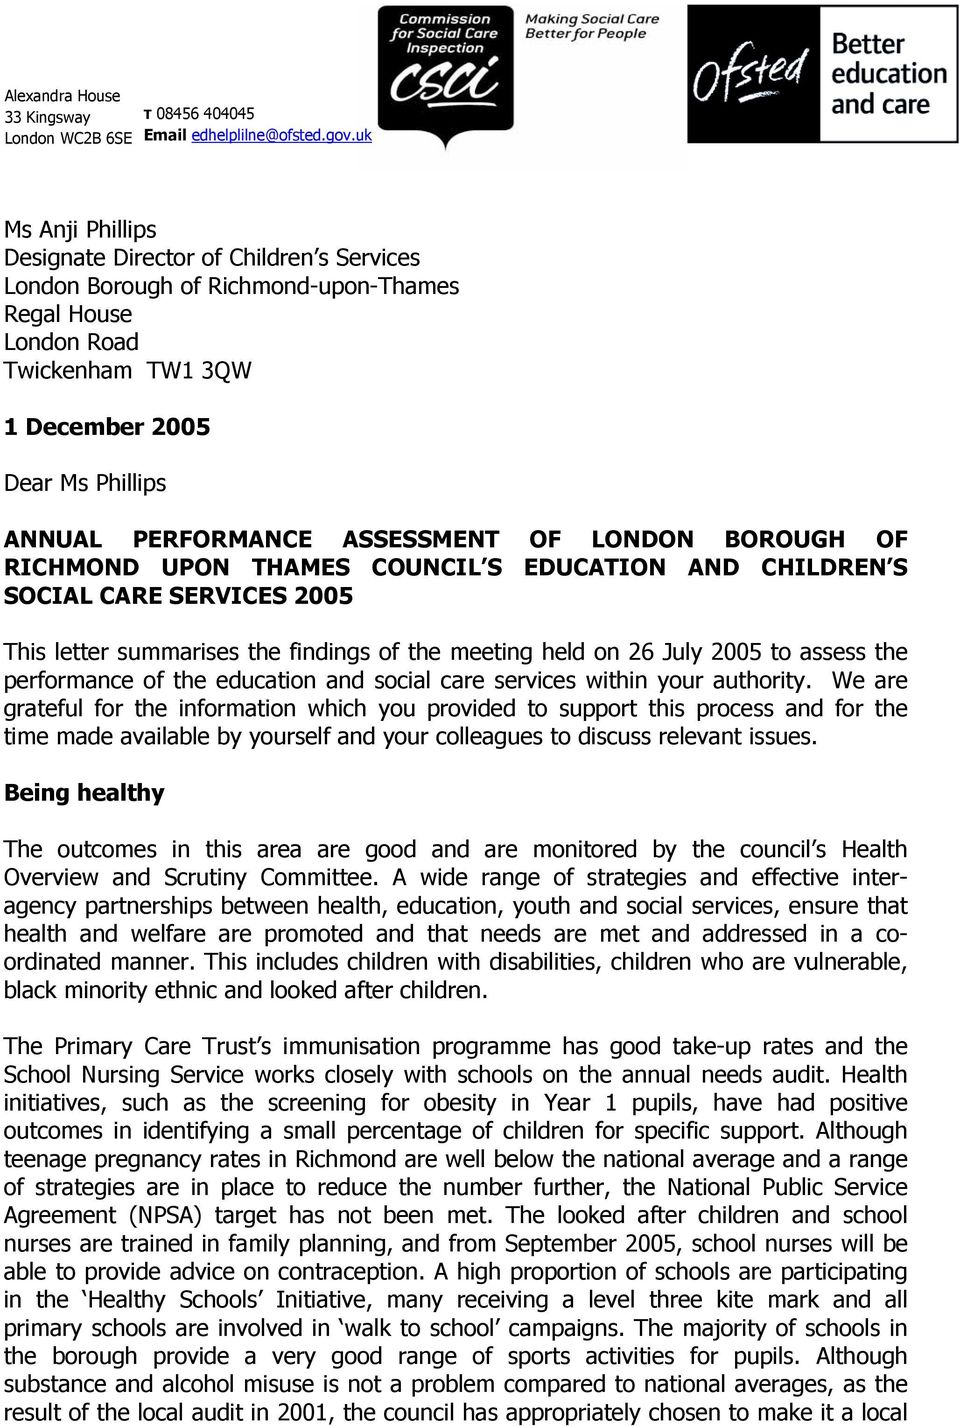 ASSESSMENT OF LONDON BOROUGH OF RICHMOND UPON THAMES COUNCIL S EDUCATION AND CHILDREN S SOCIAL CARE SERVICES 2005 This letter summarises the findings of the meeting held on 26 July 2005 to assess the